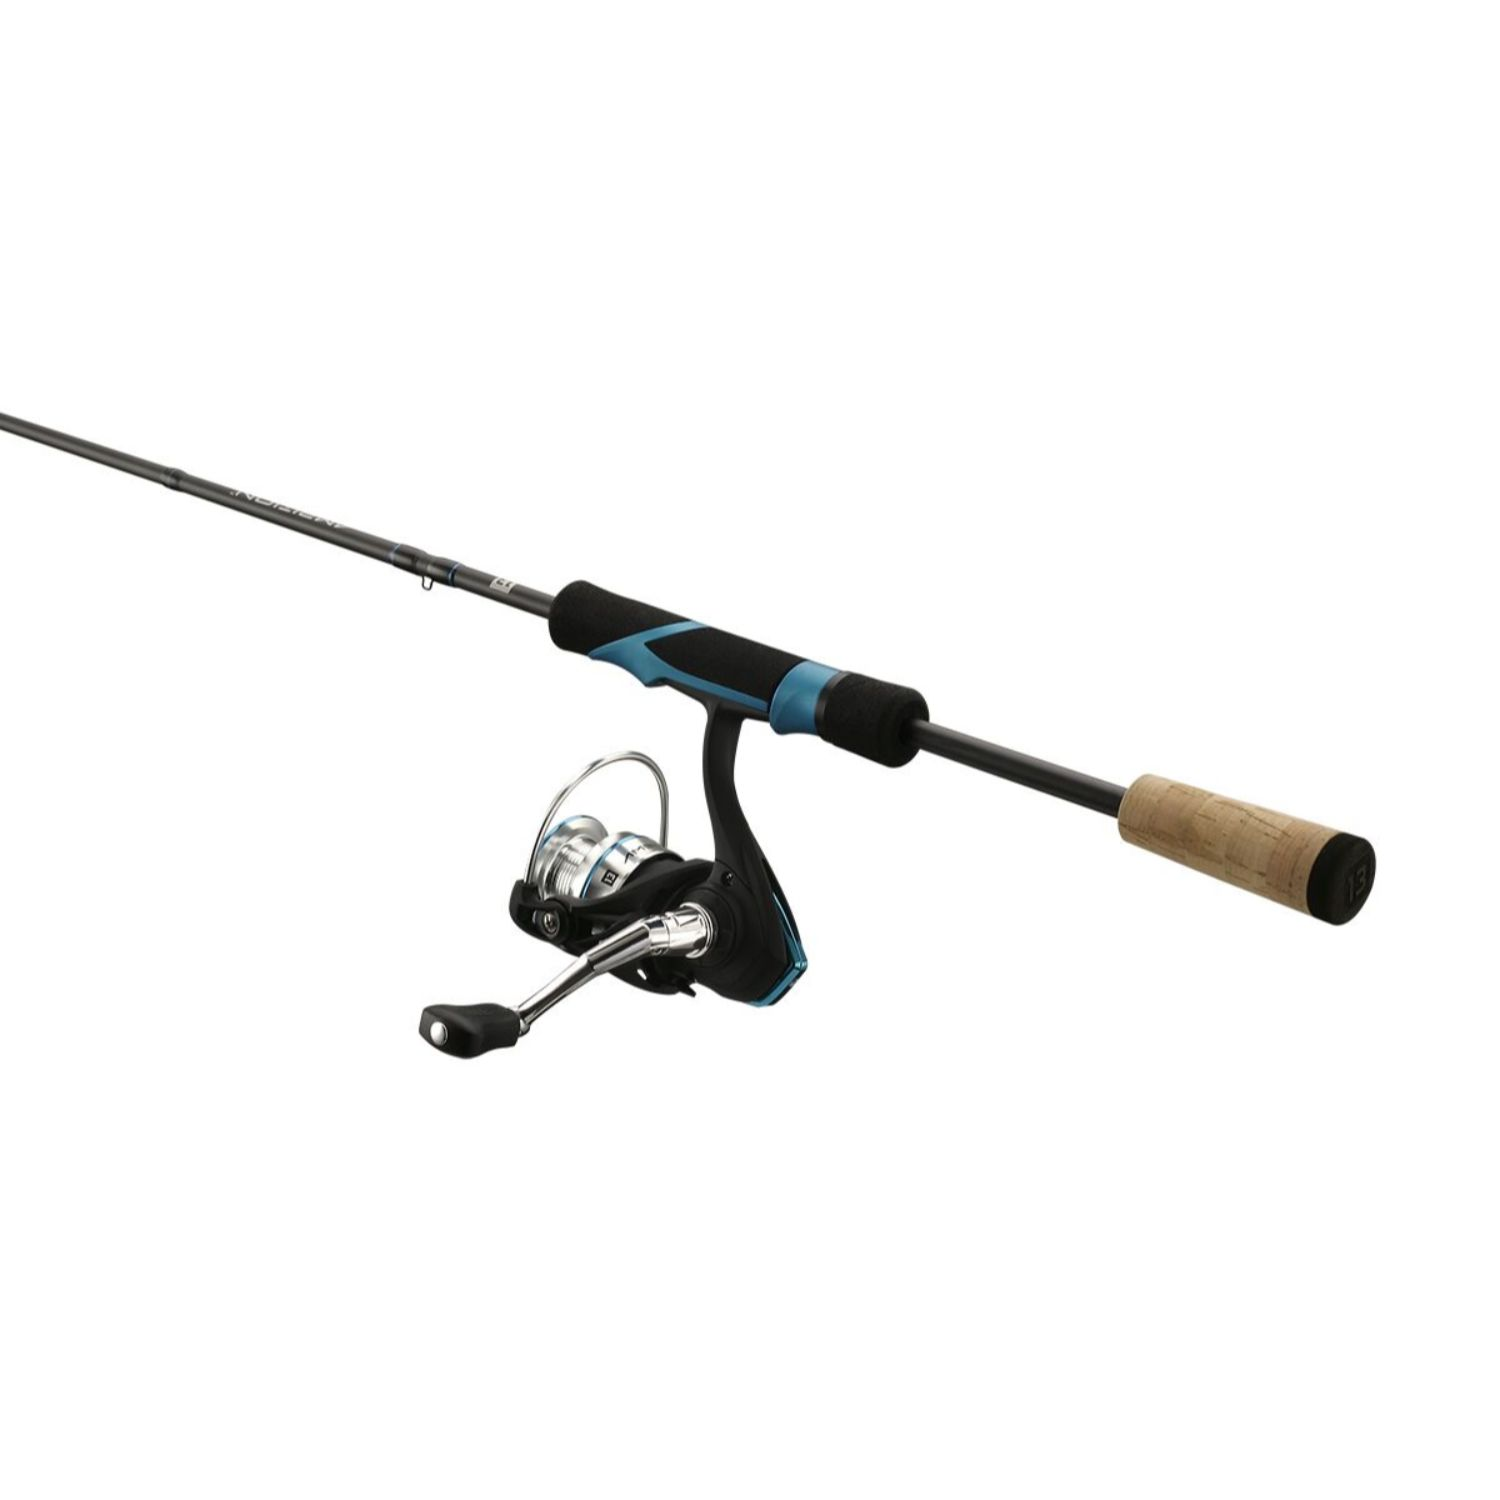 13 Fishing Ambition 5 ft 6 in UL Spinning Combo